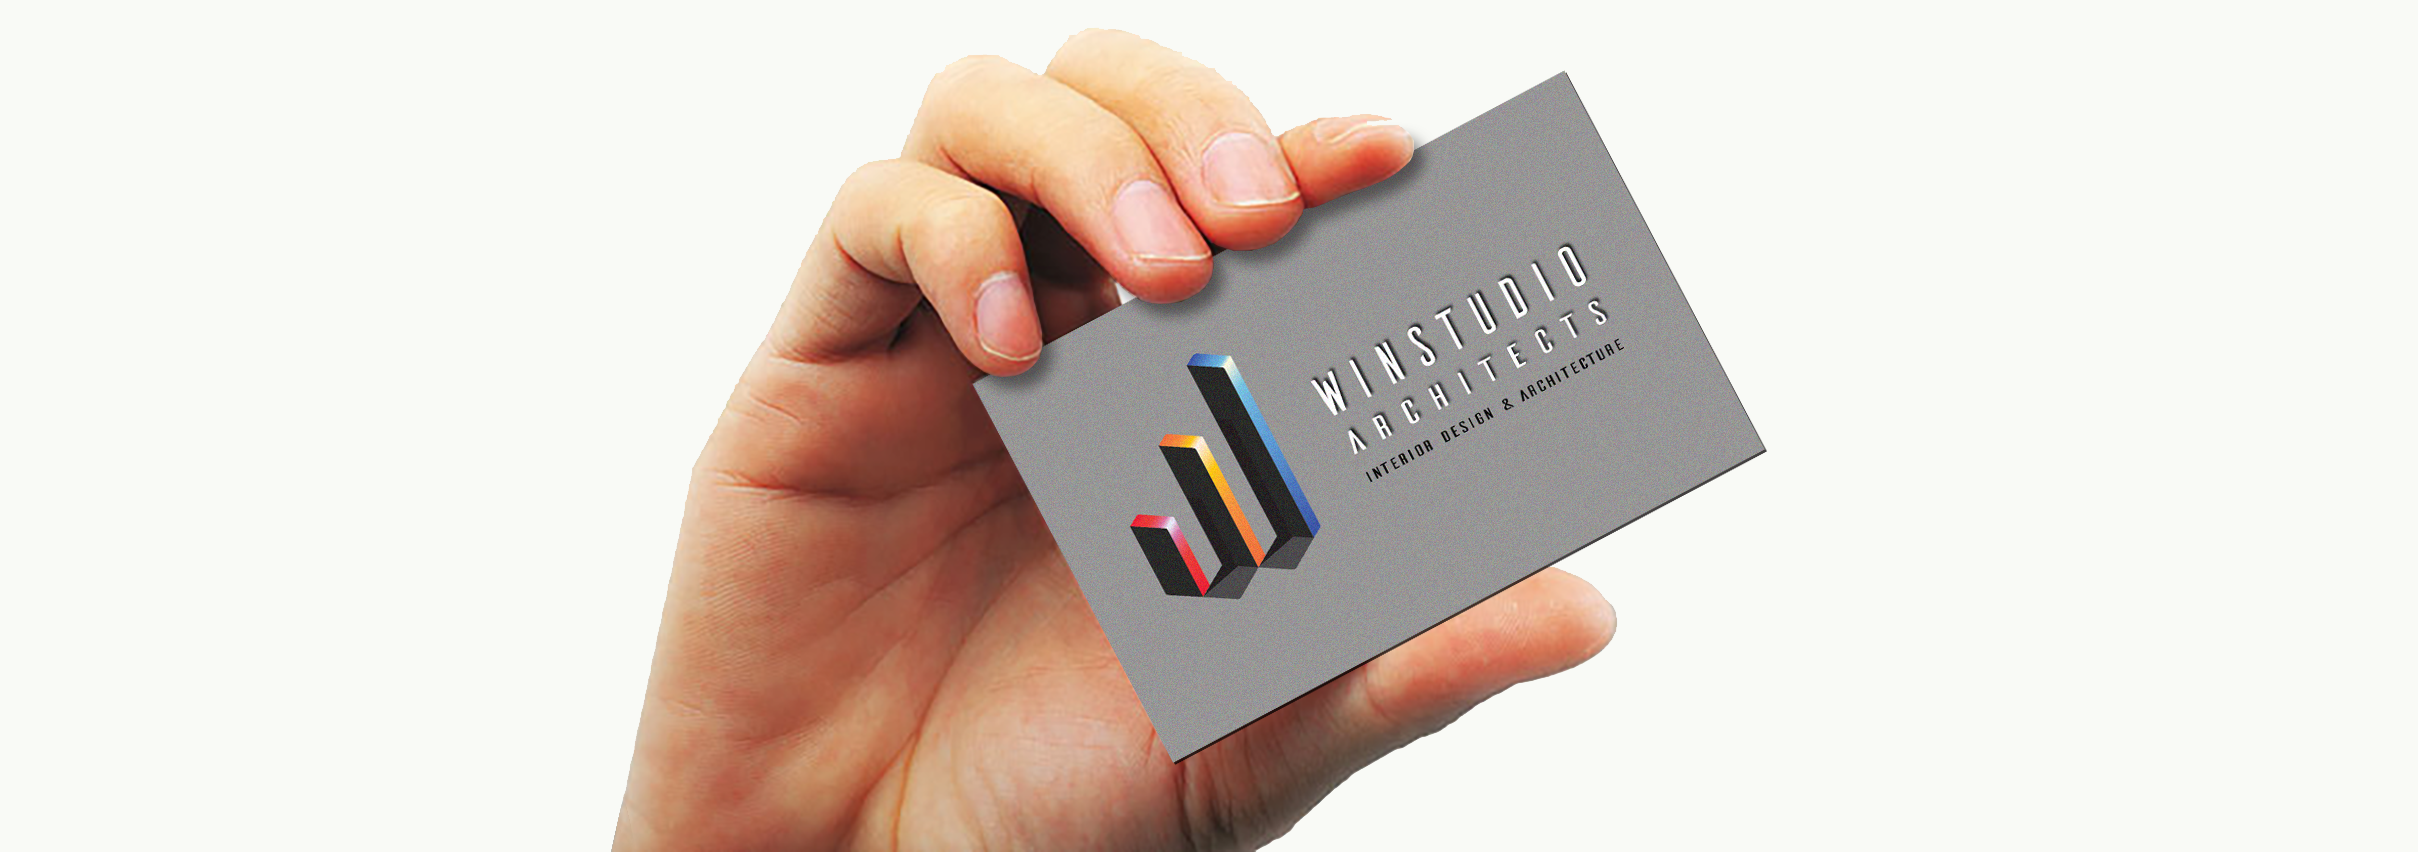 winstudio business card